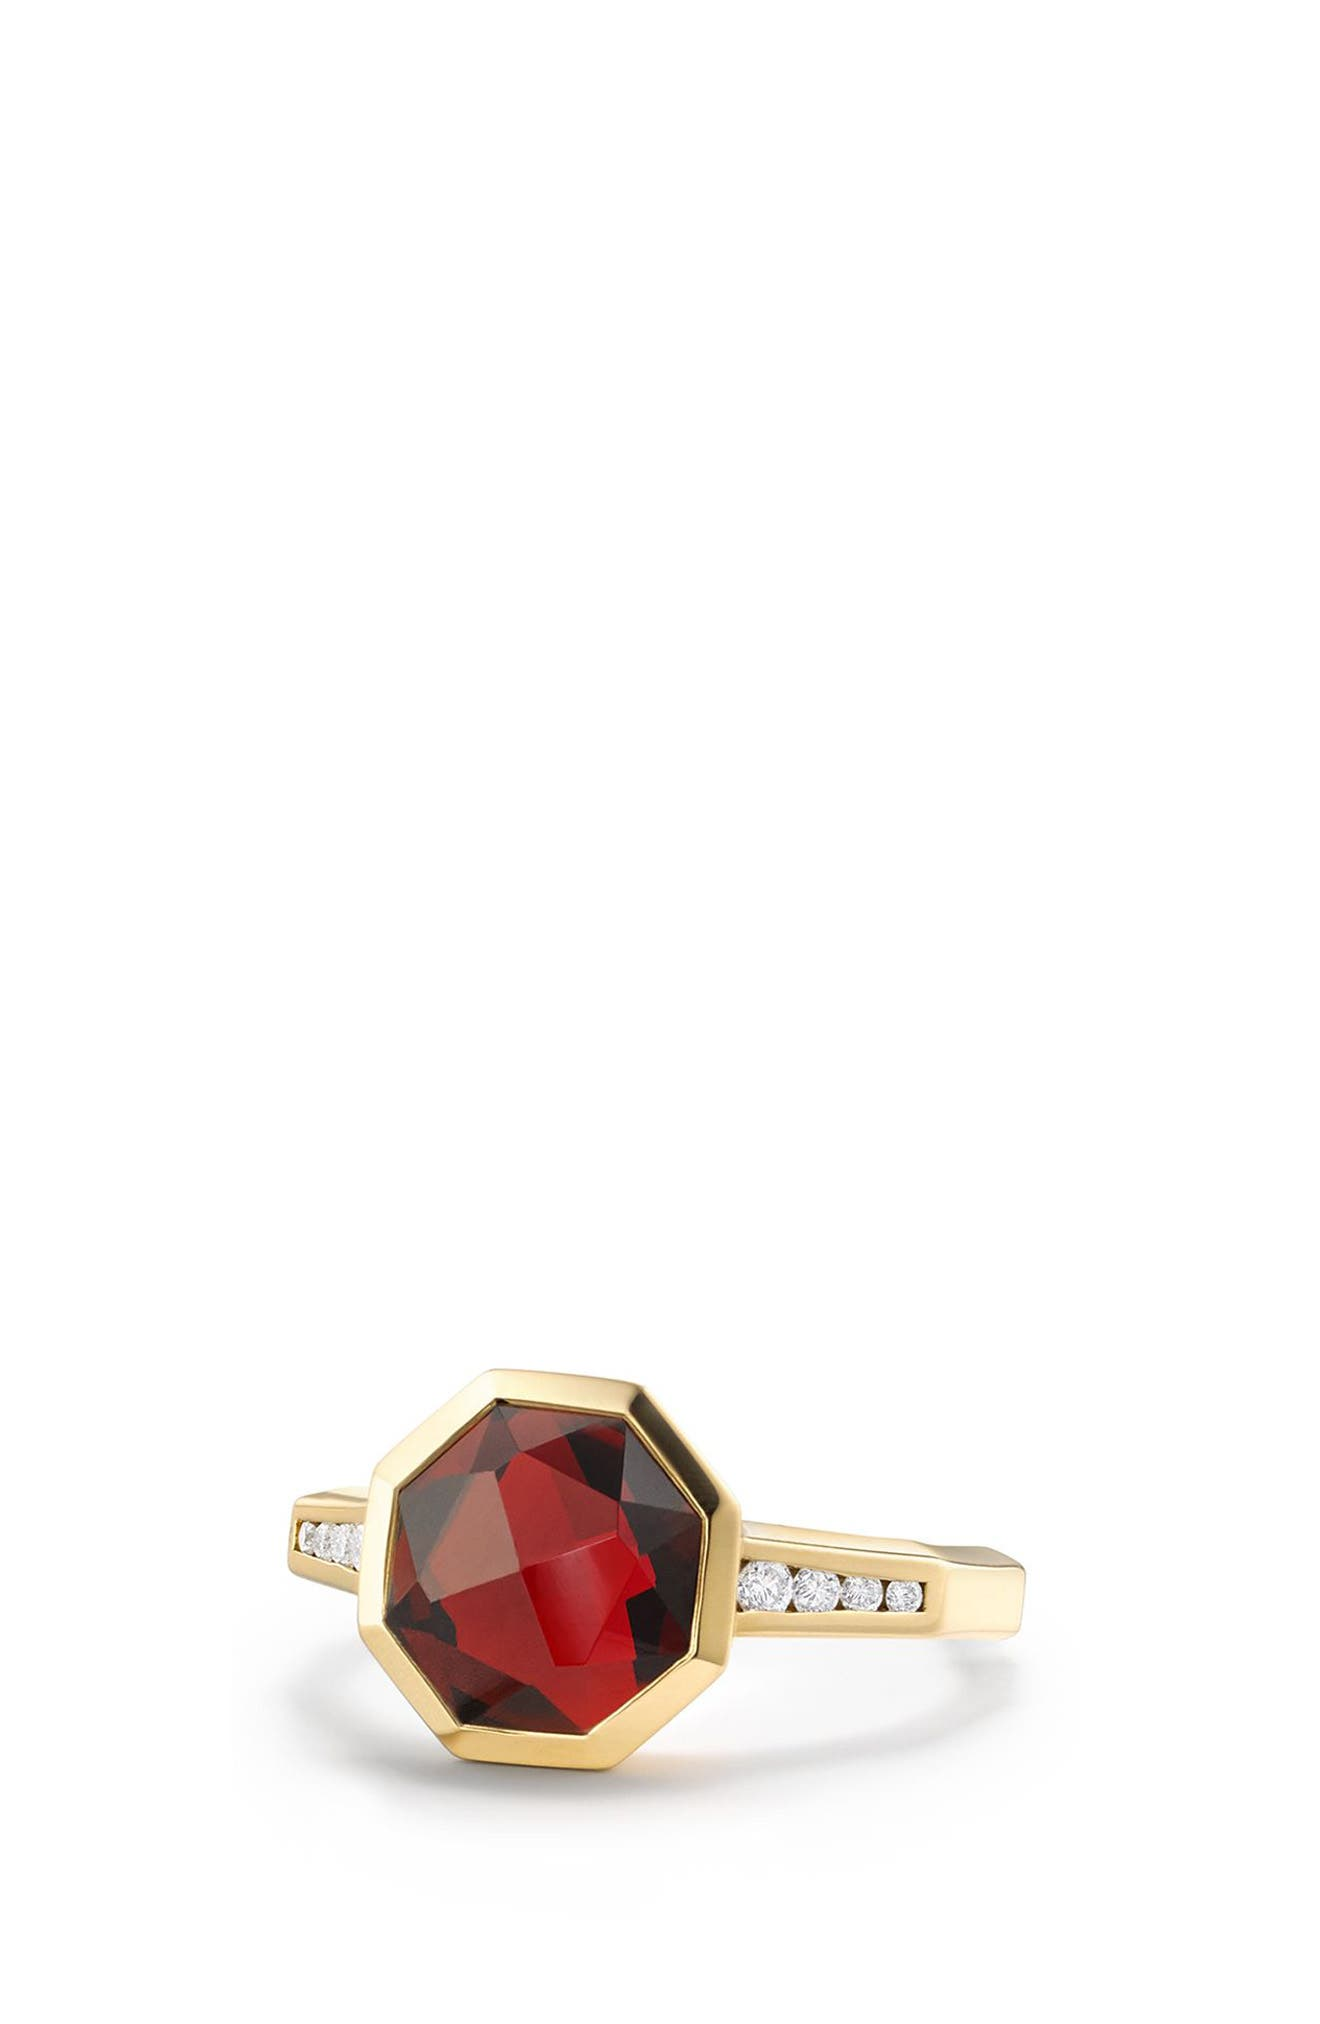 Guilin Octagon Ring with Diamonds in 18K Gold,                         Main,                         color, YELLOW GOLD/ DIAMOND